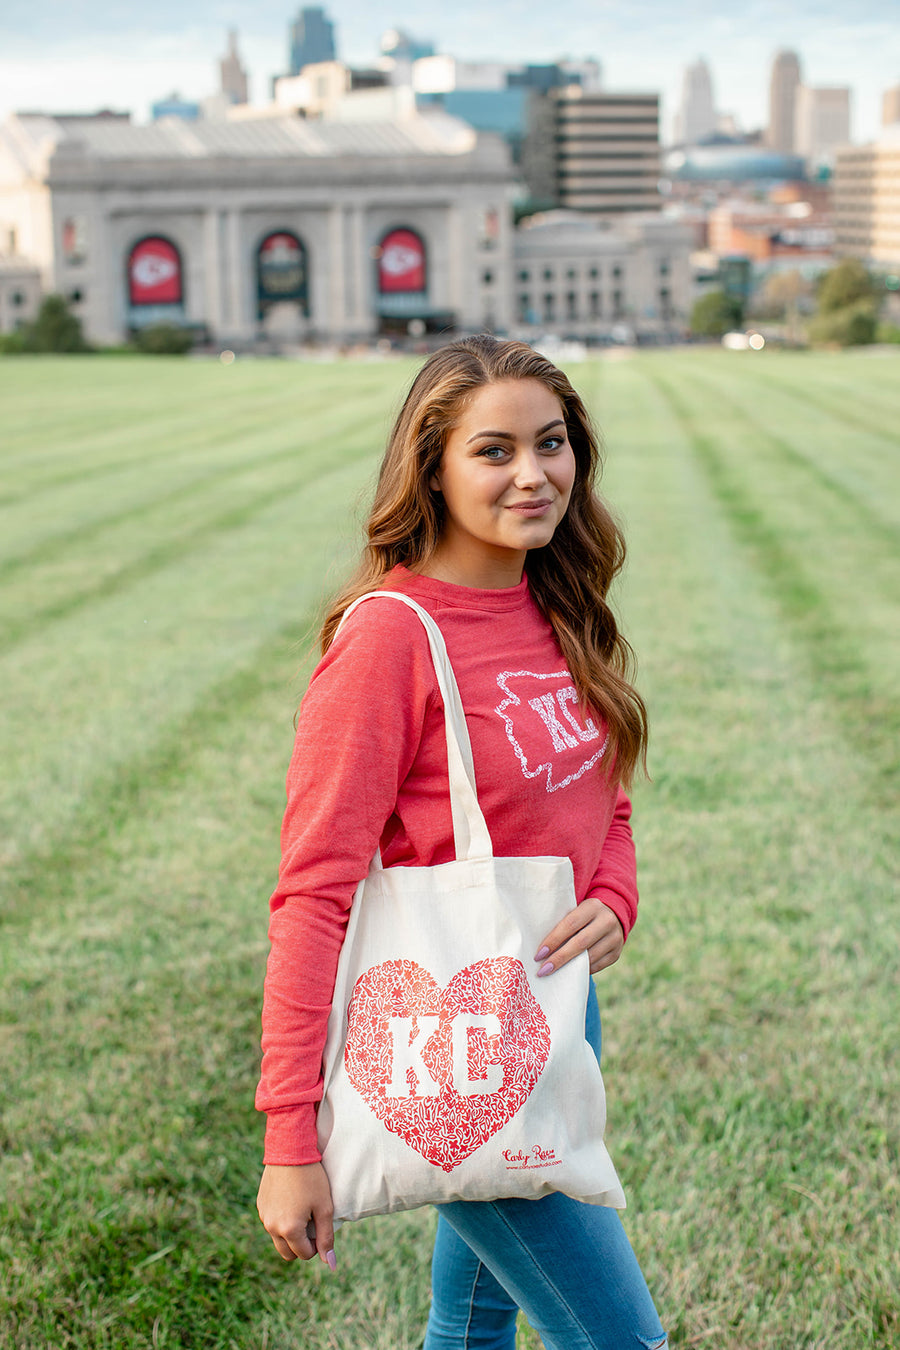 Kansas City Arrowhead Sweatshirt - Unisex Fit